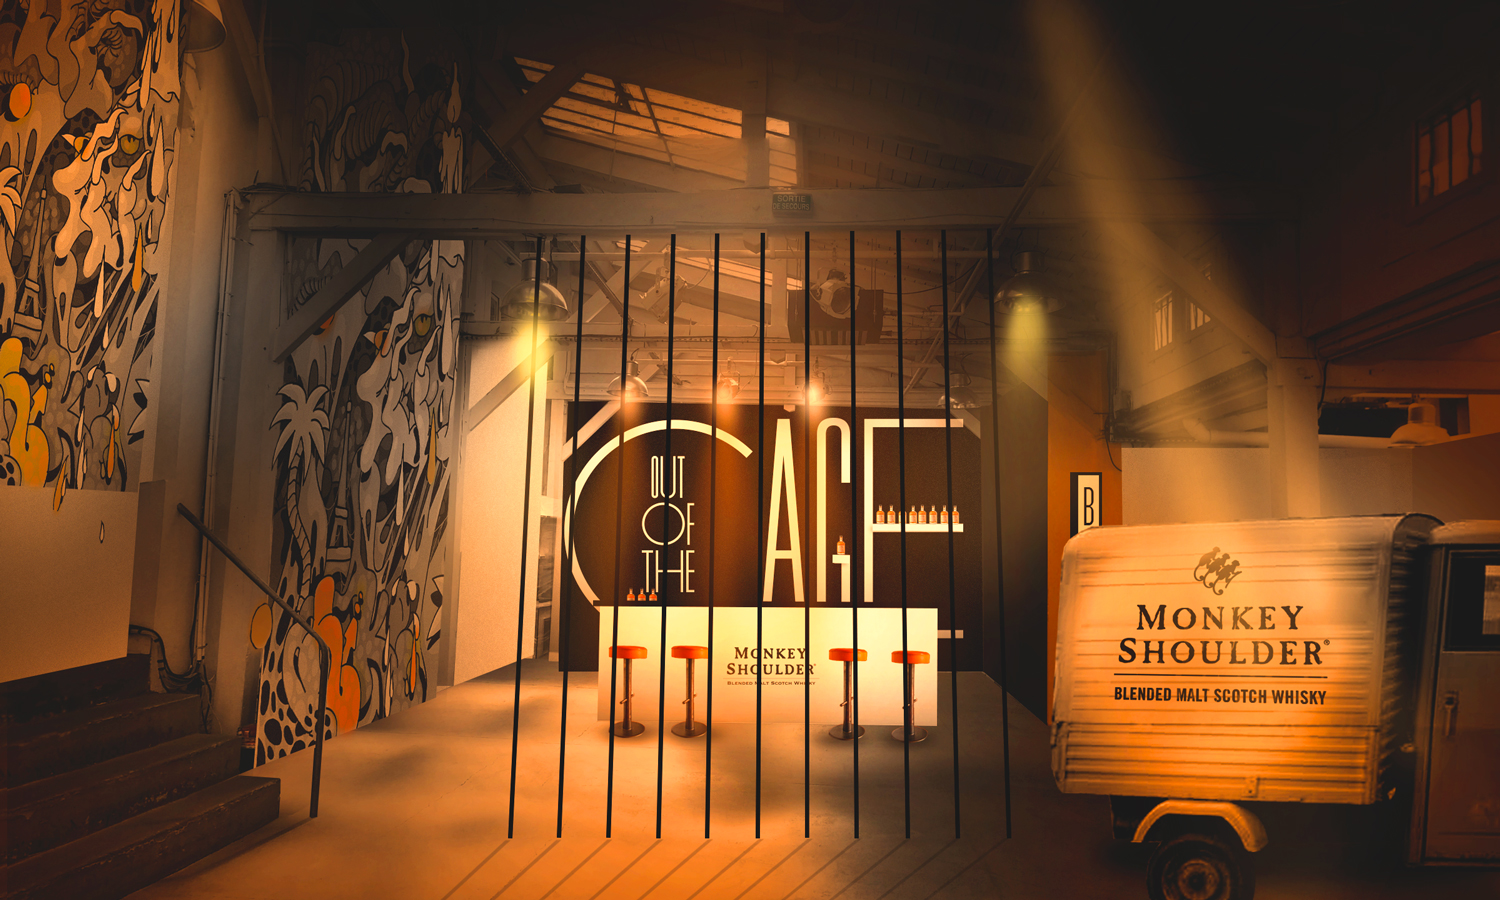 Bar Out of The Cage-Monkey Shoulder du 26 au 31 octobre